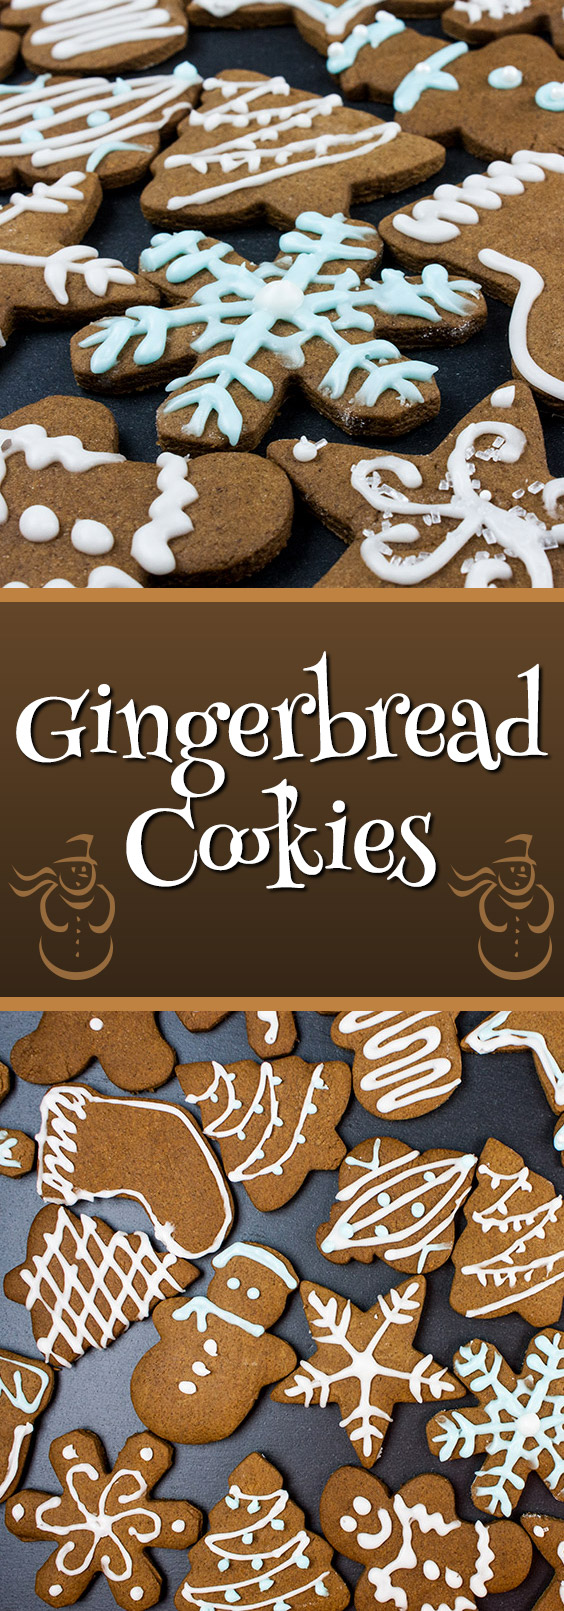 Gingerbread Cookies - The perfect gingerbread cookie, soft texture, holds shape while baking and a delightful ginger flavor. A holiday MUST make!